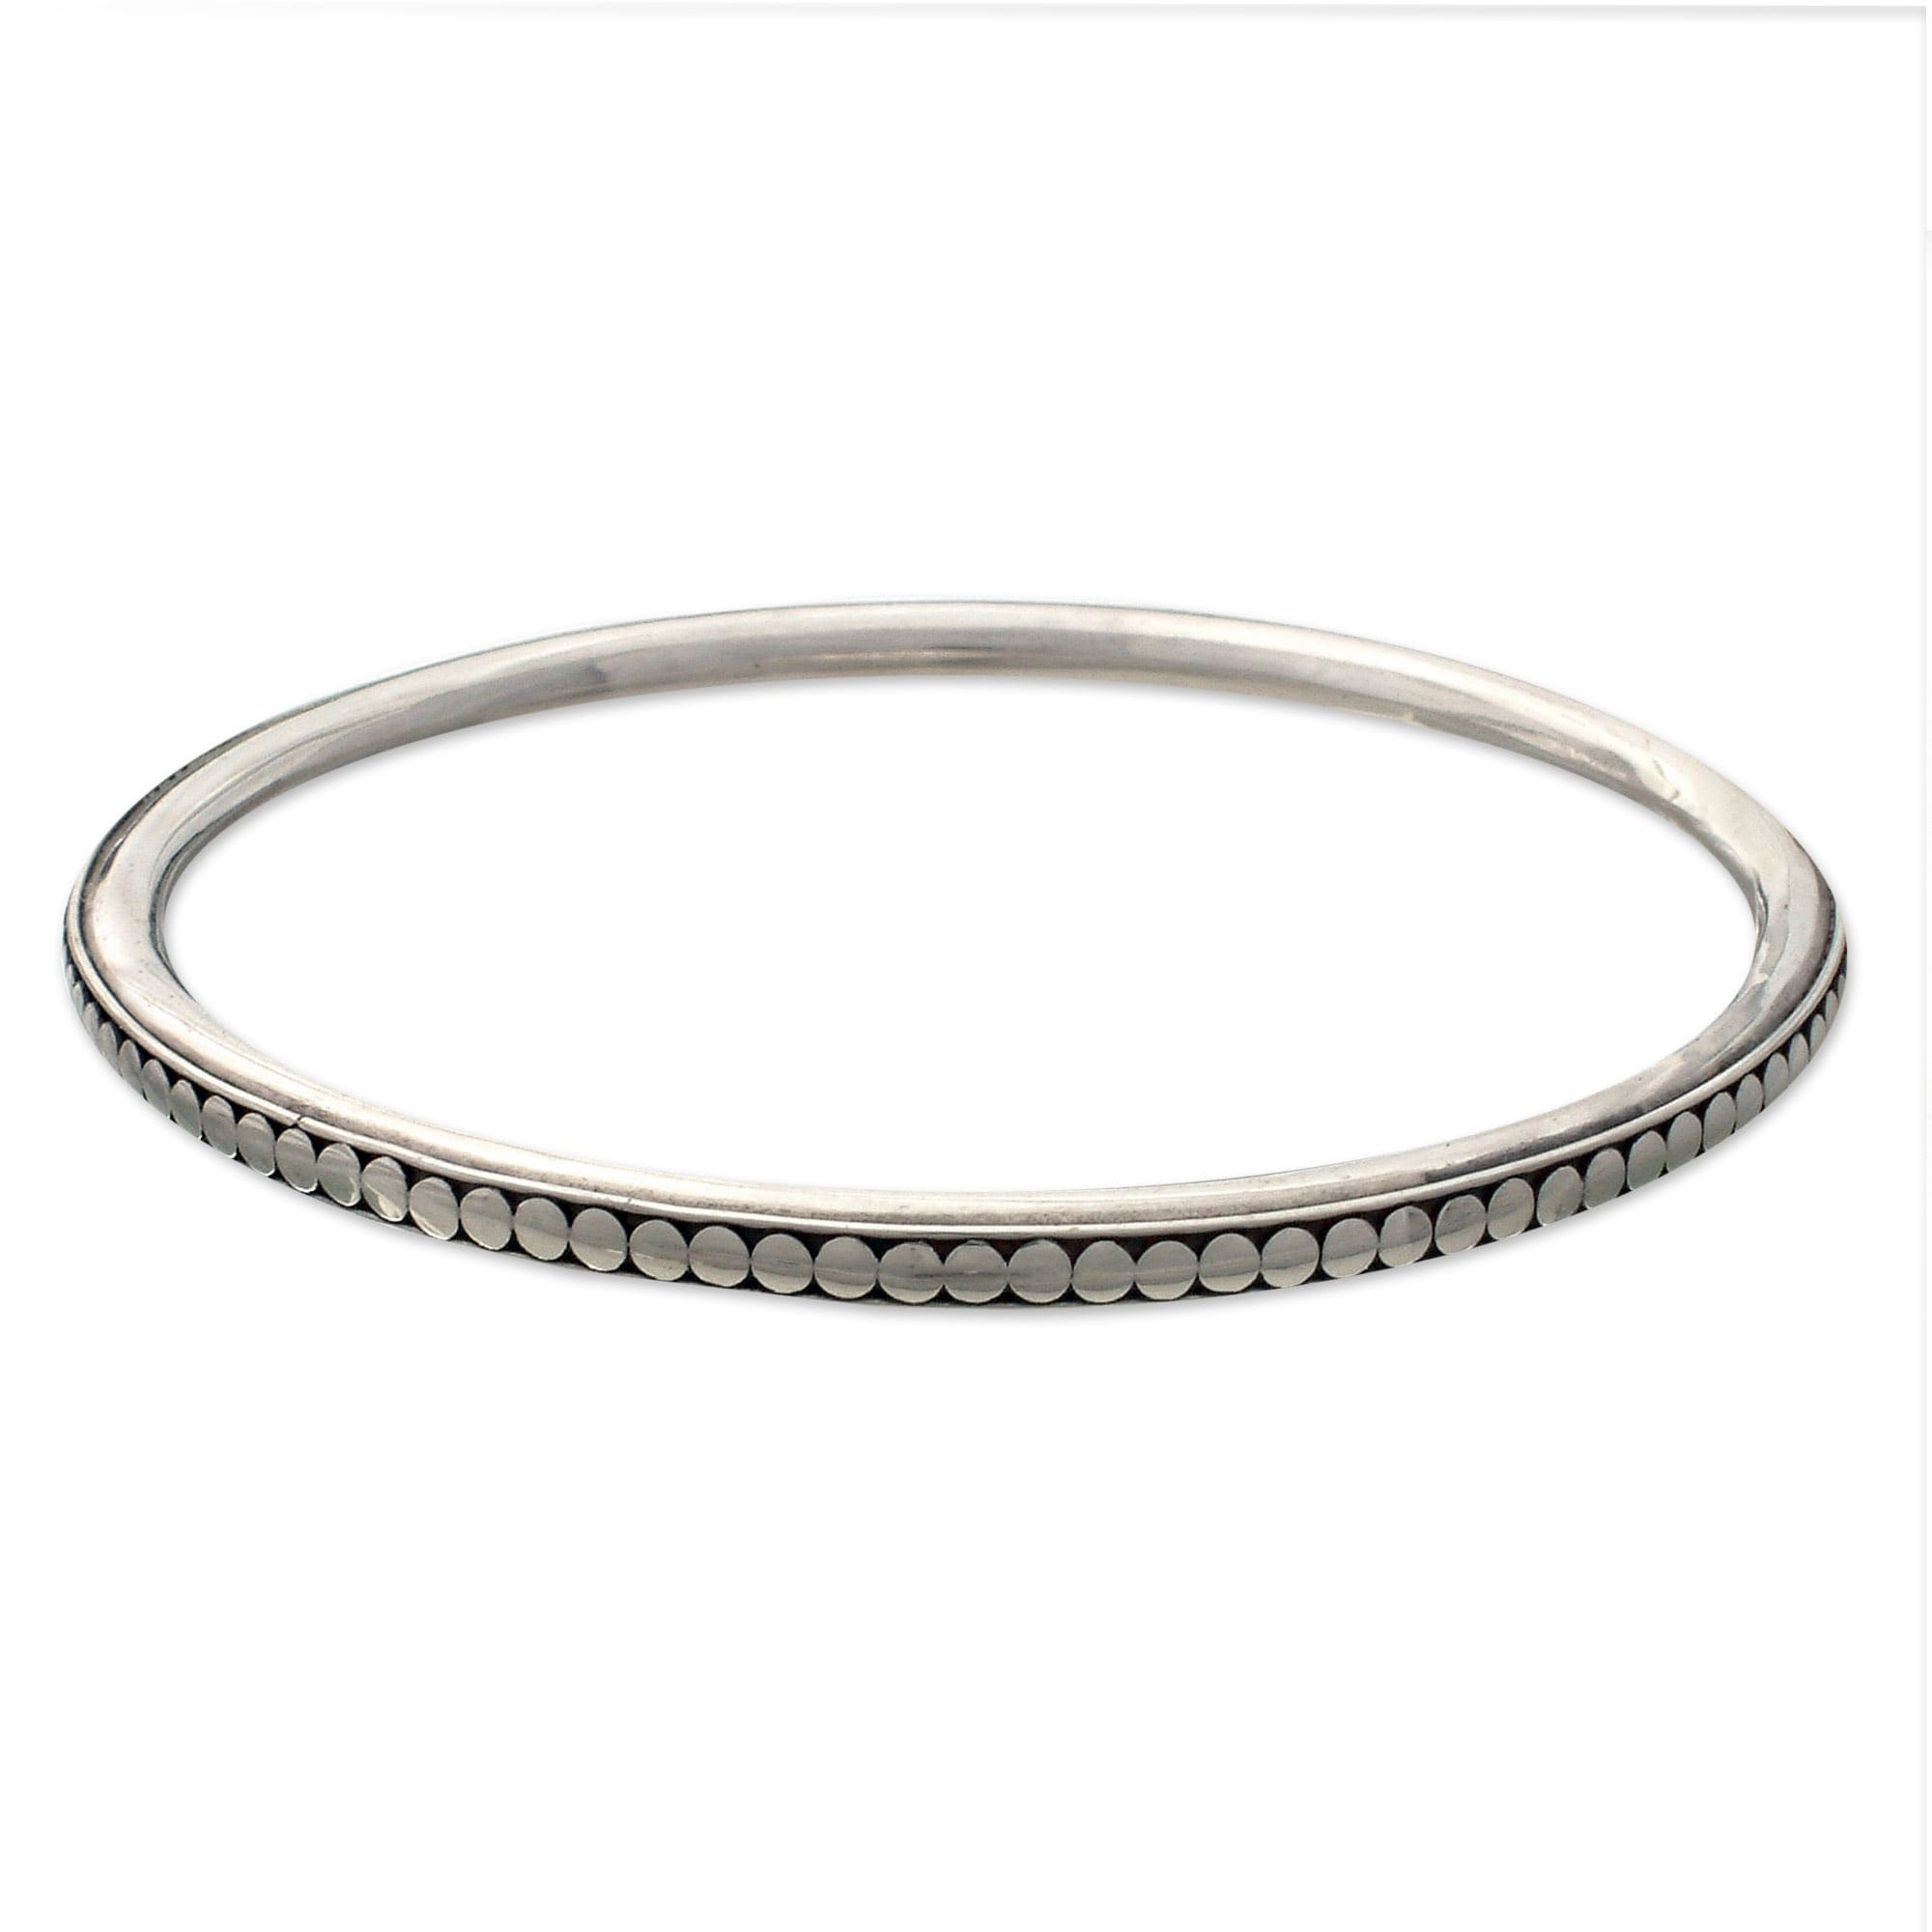 bangles in bracelets bracelet tapered small silver gold yellow bangle